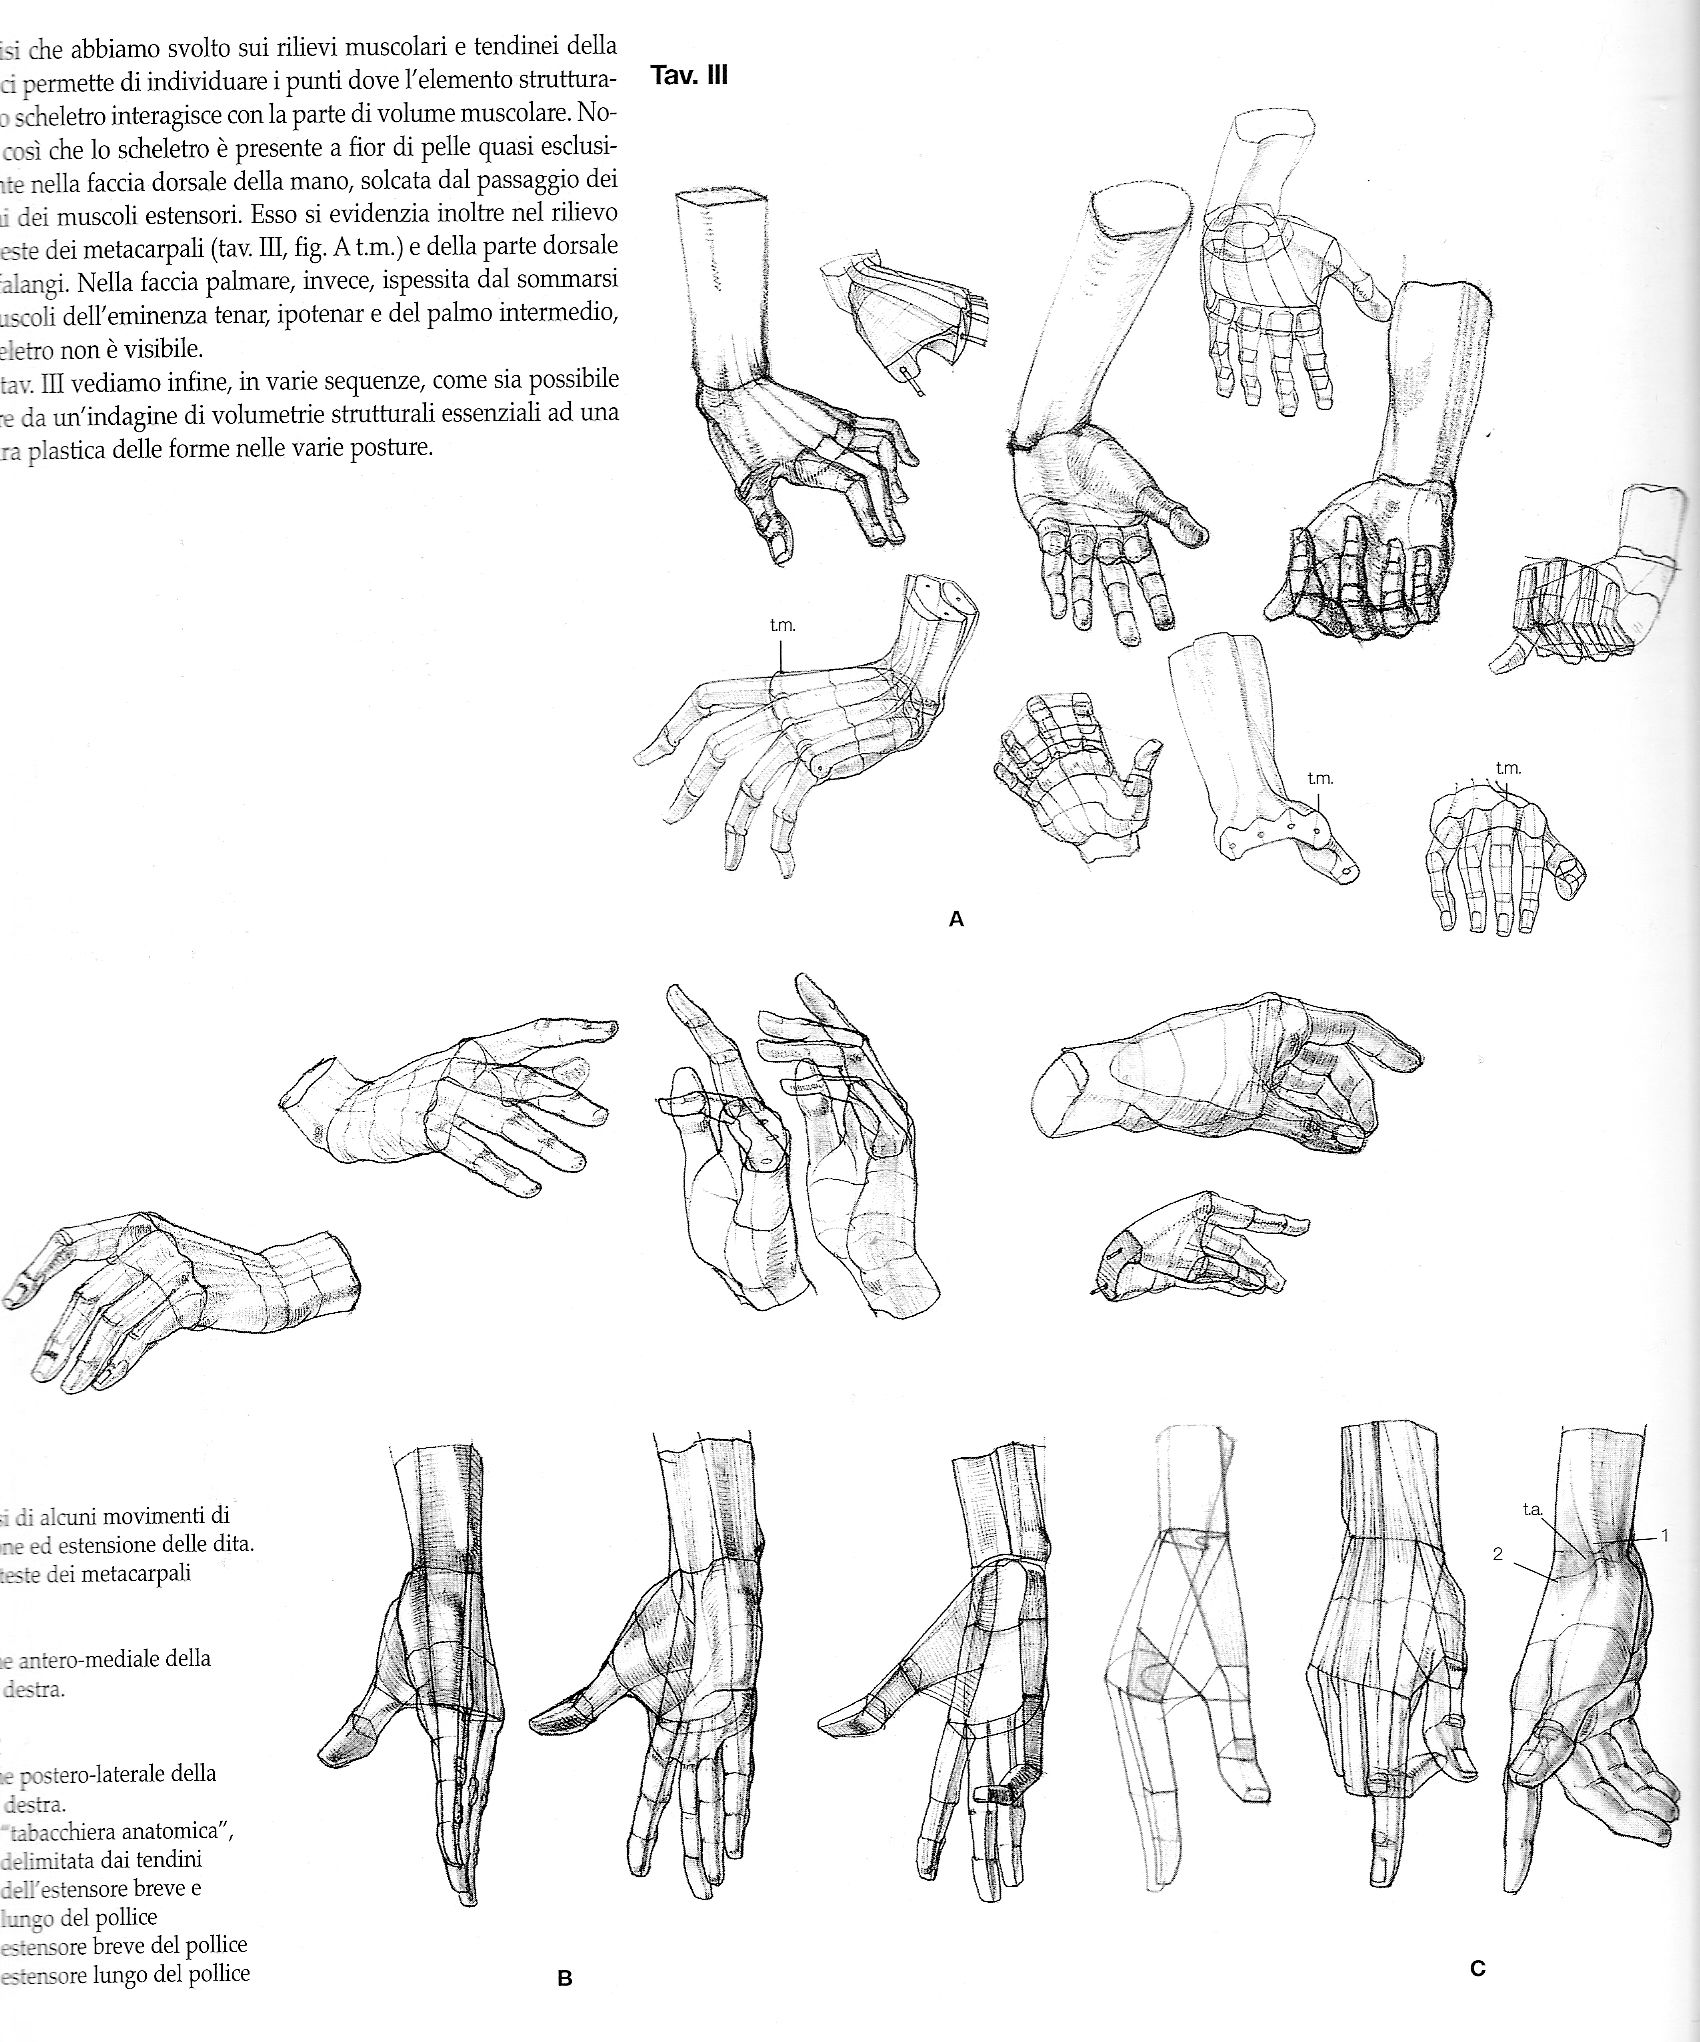 Anatomical drawings of hands from @characterdesigh #anatomy #hand ...